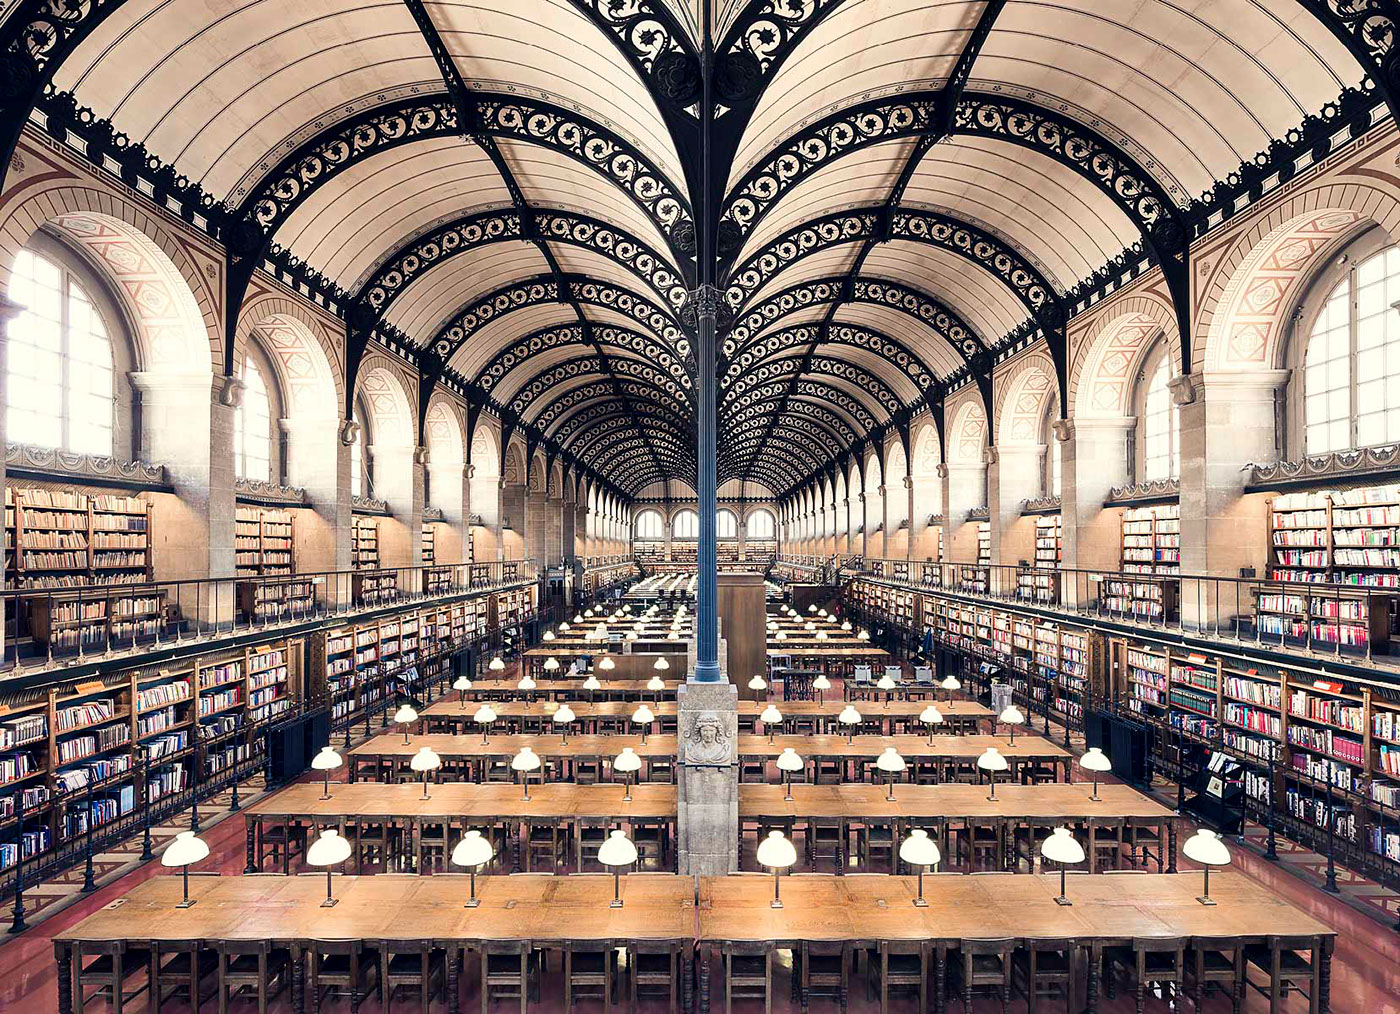 Bibliotheque Sainte-Genevieve, Paris, 1850